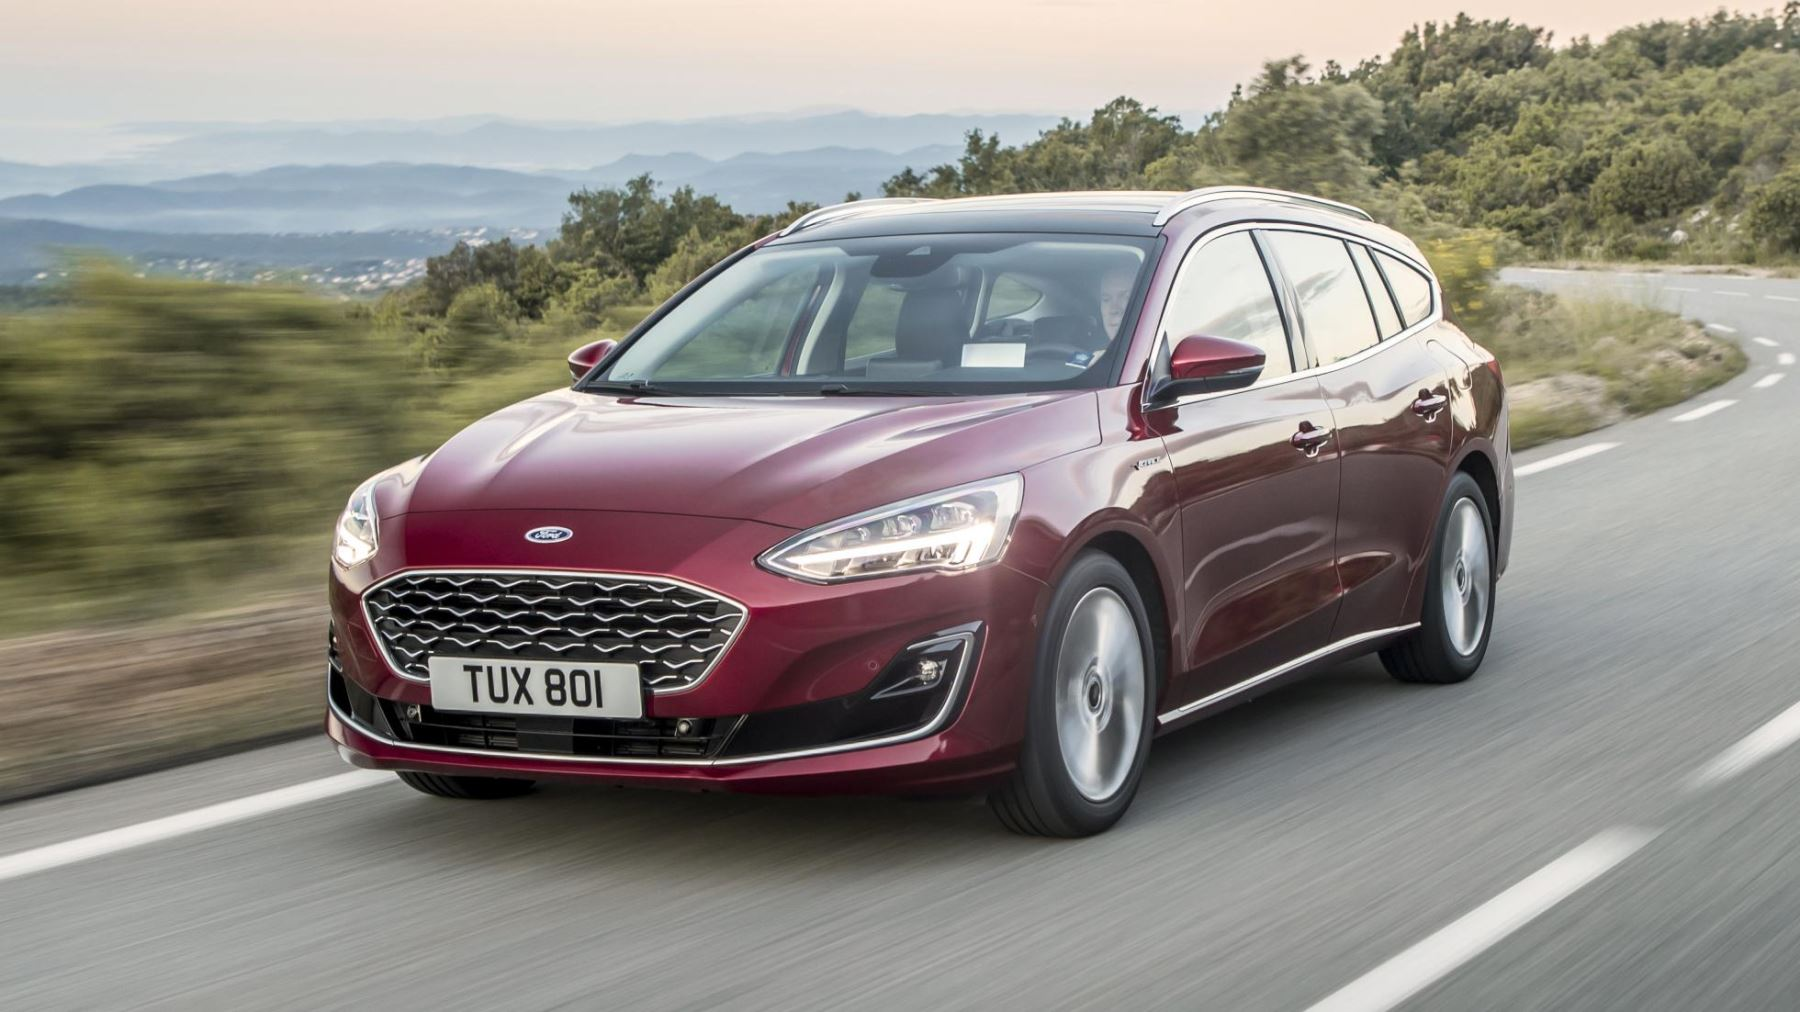 Ford Focus Titanium X 1.5 Diesel 120ps Diesel 5 door Estate (2019)